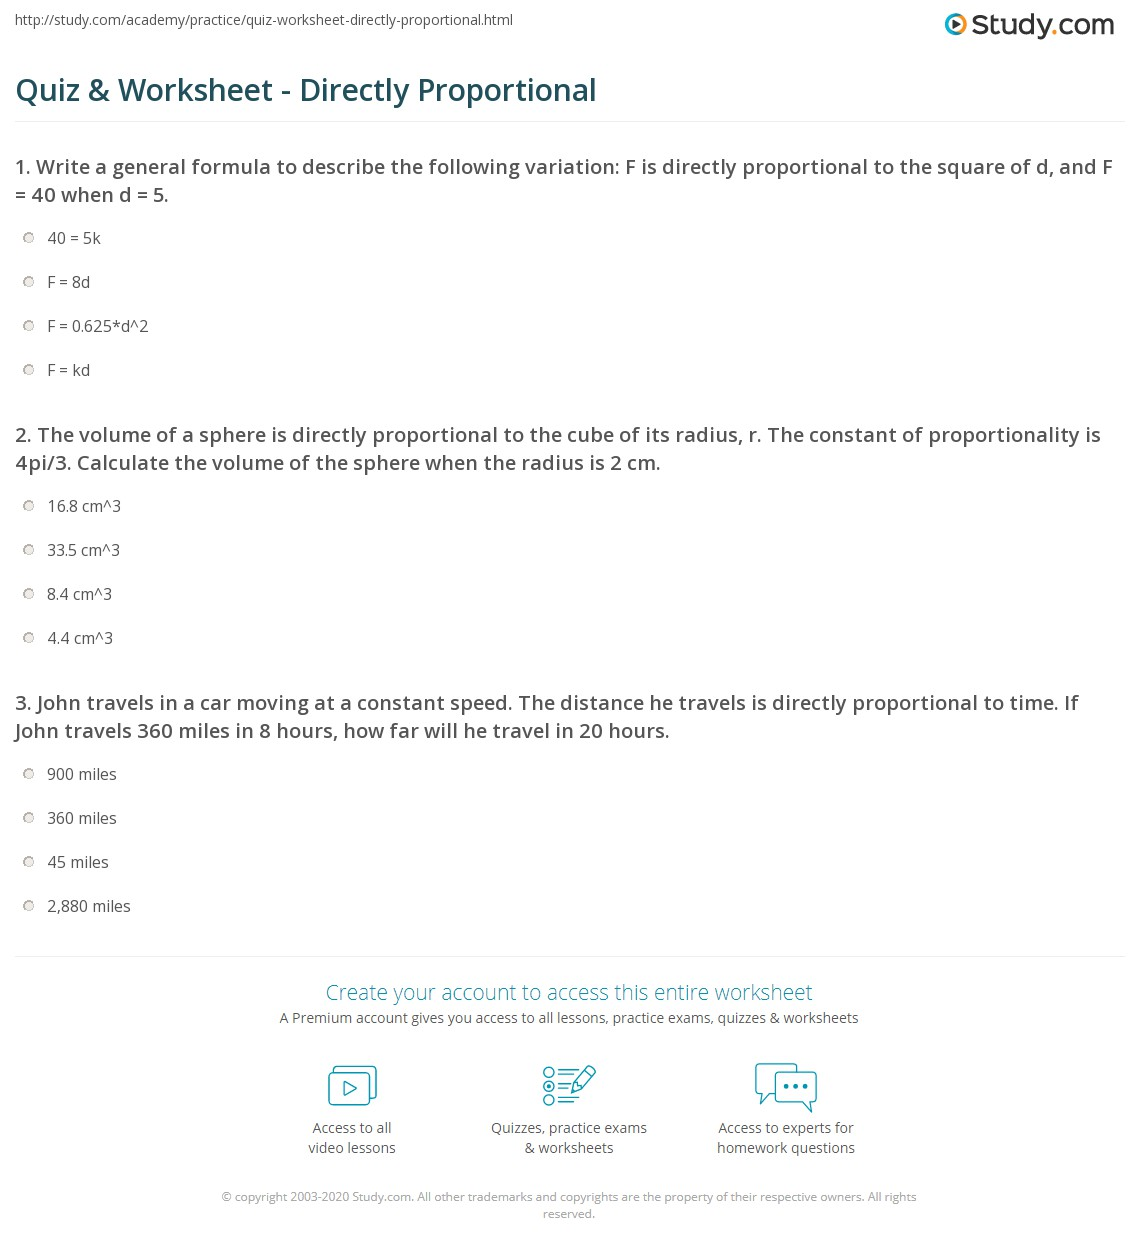 worksheet 8 F 2 Worksheet quiz worksheet directly proportional study com 1 the volume of a sphere is to cube its radius r constant proportionality 4pi3 calculate o